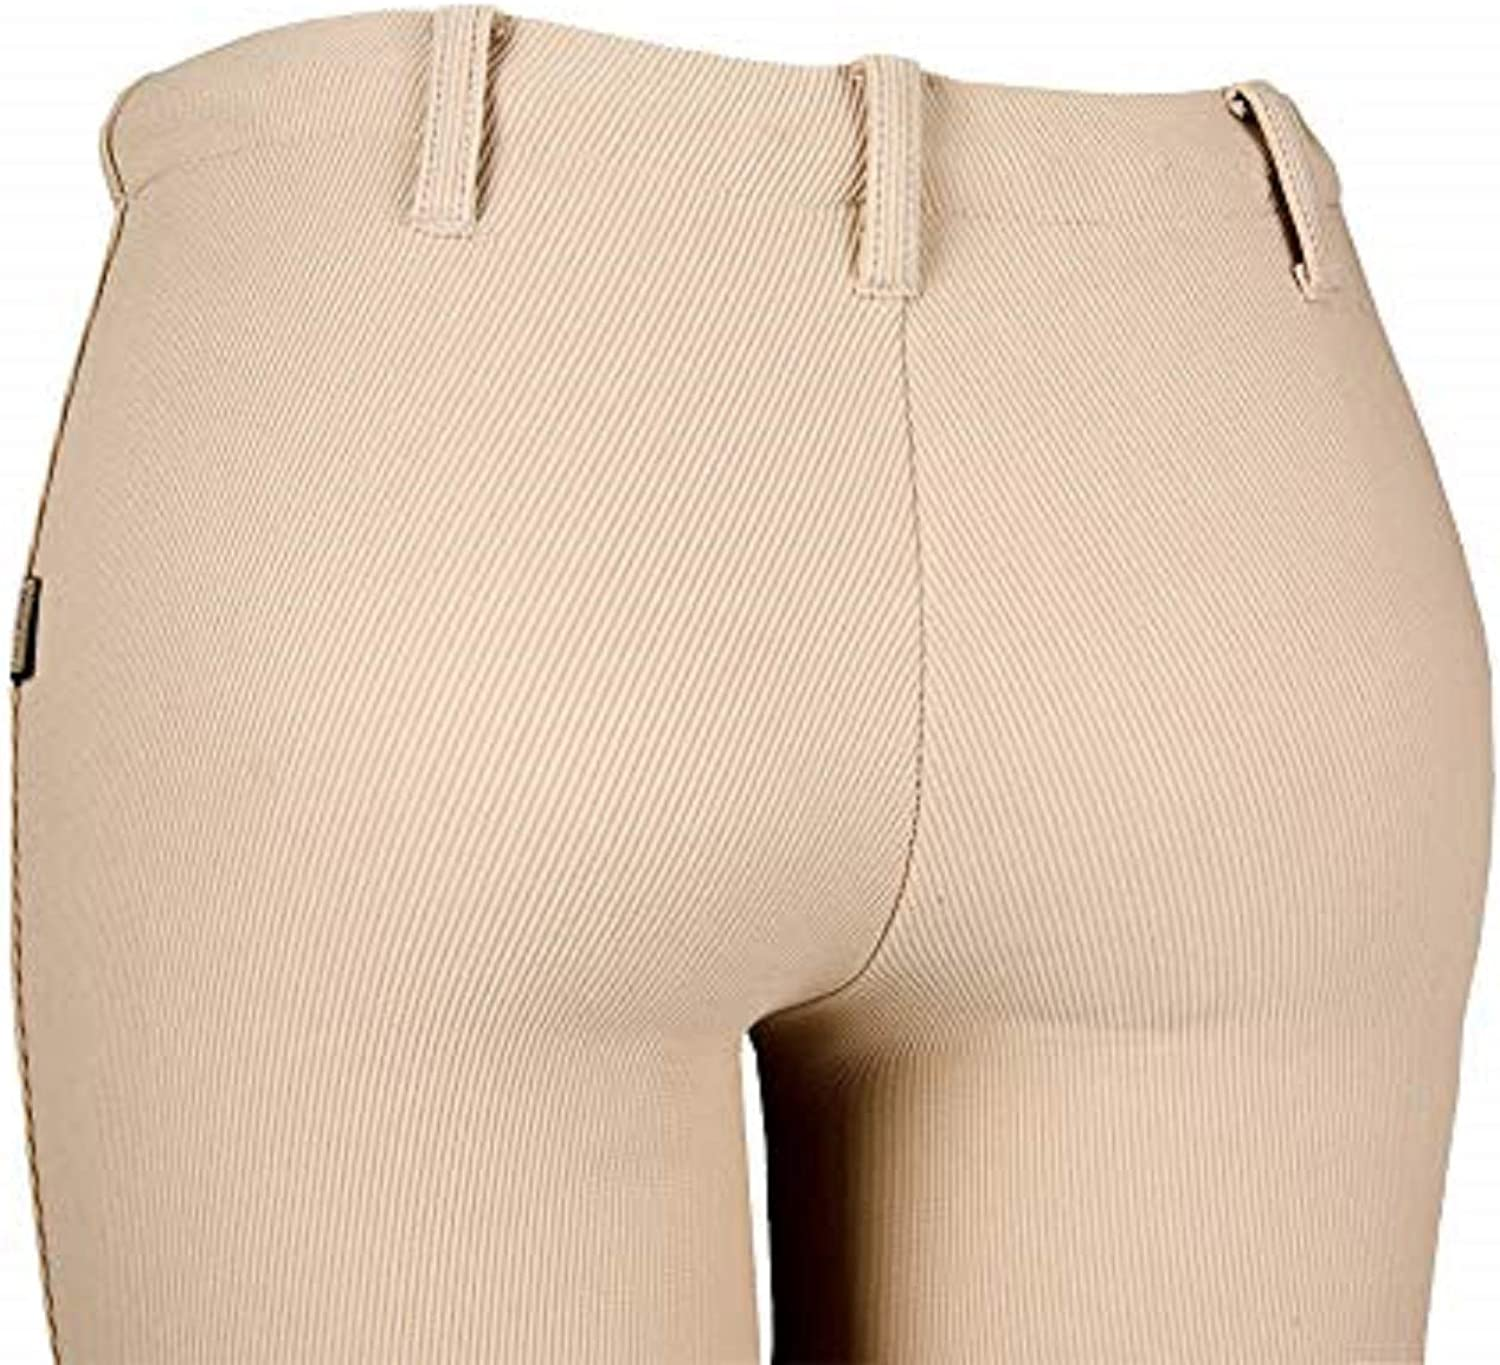 DEVON-AIRE Womens All-Pro Pull-On Beige Riding Breeches